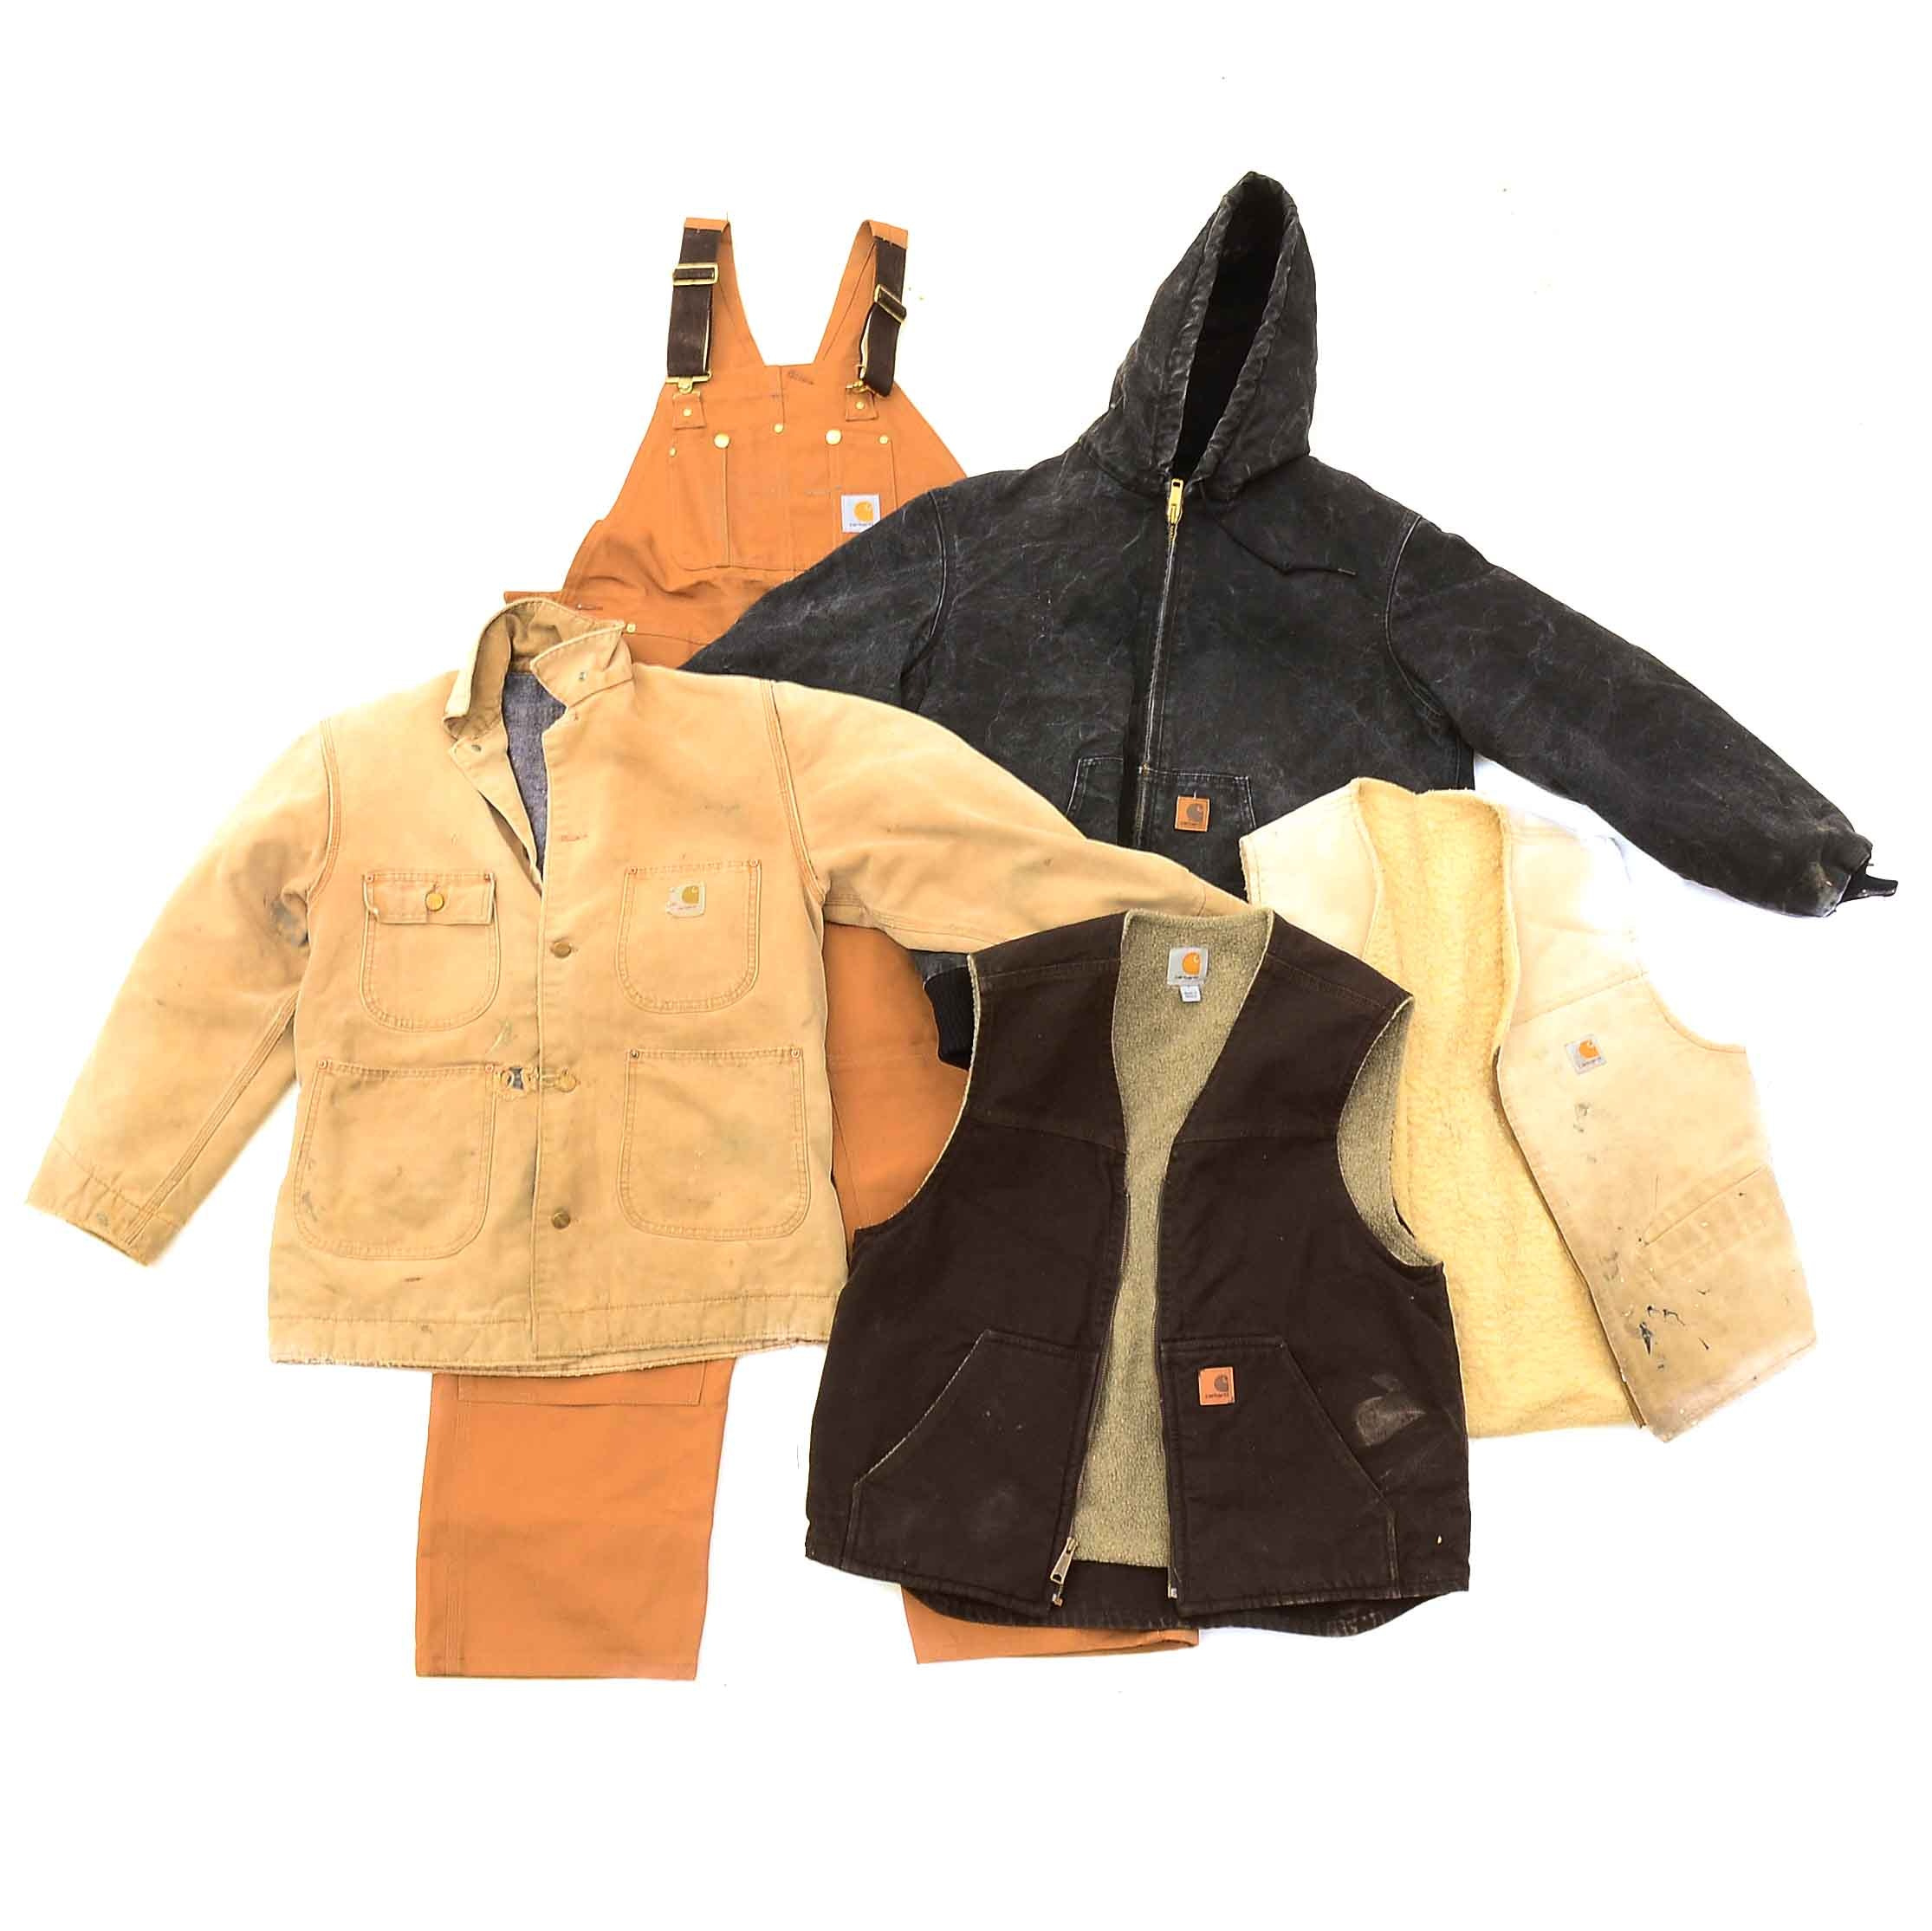 Five-Pieces of Carhartt Canvas Work Clothes